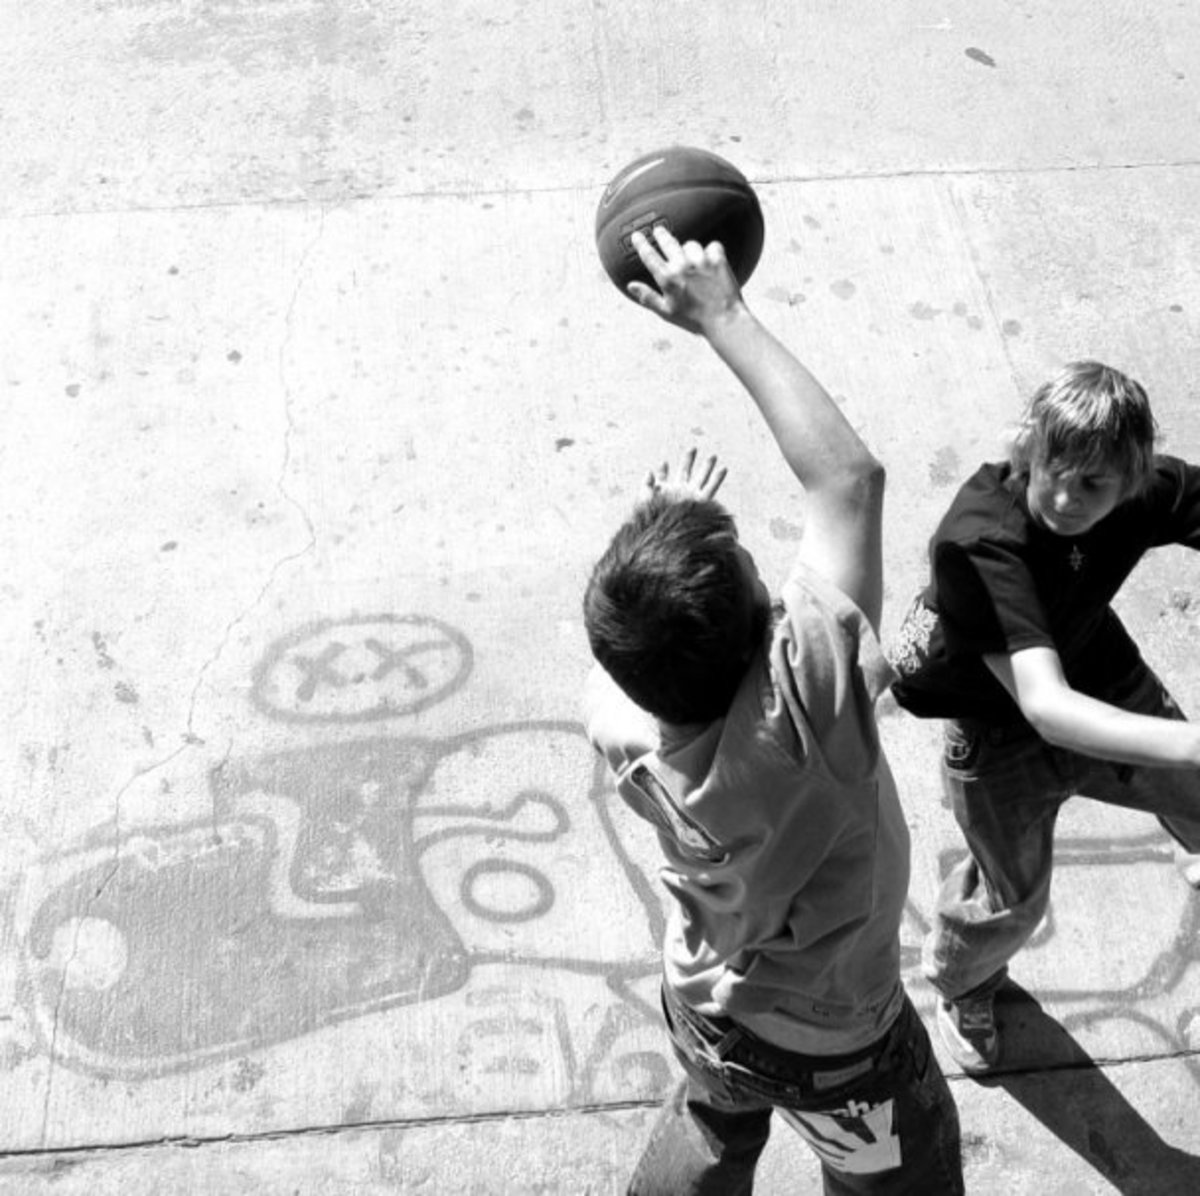 Playing sports indirectly teaches you many life skills